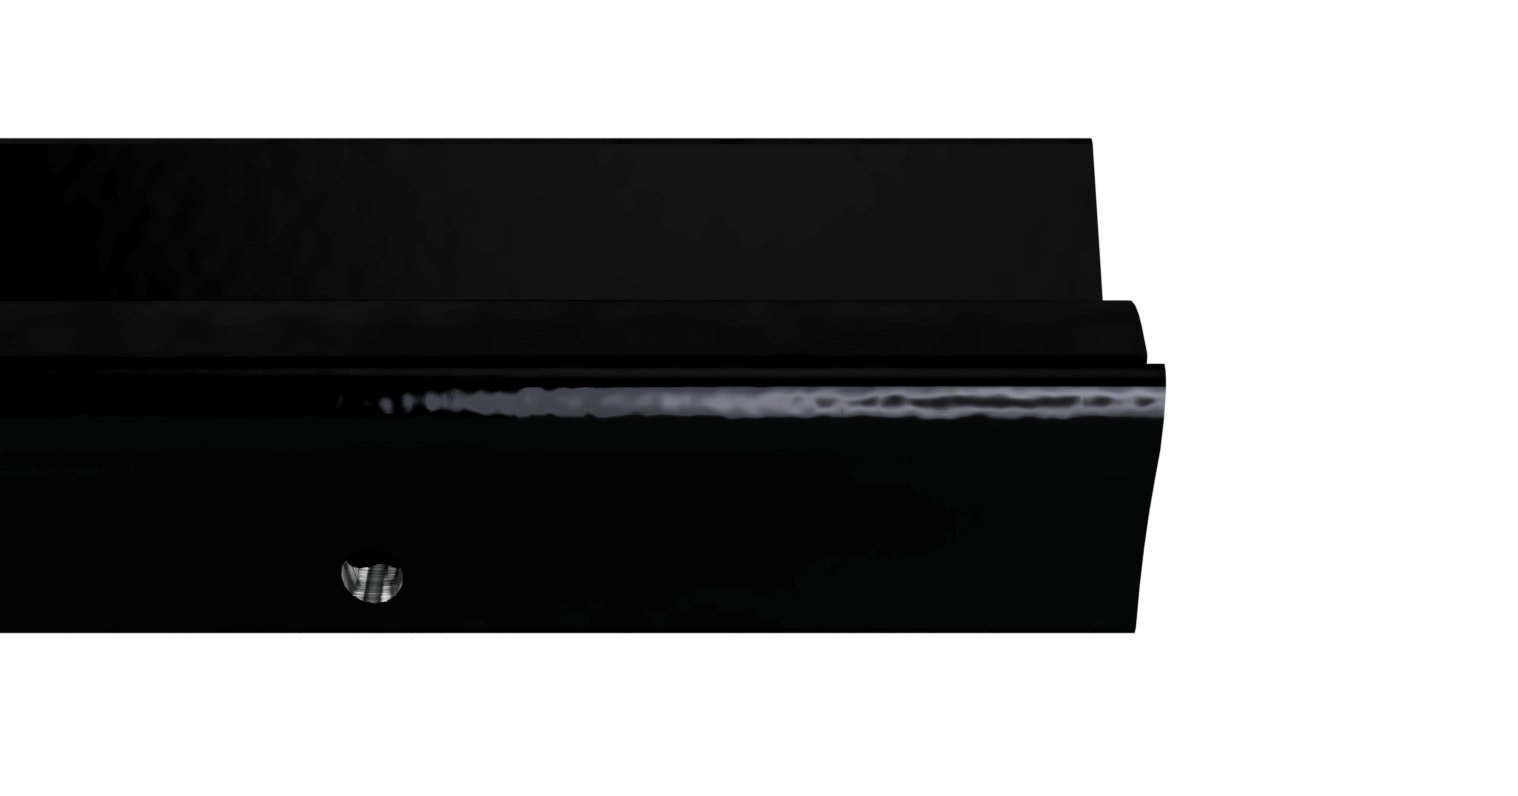 STORMGUARD 04SR0011828BL Lowline Inward Opening Threshold Sill, Black, 1828mm (6'0'') by STORMGUARD